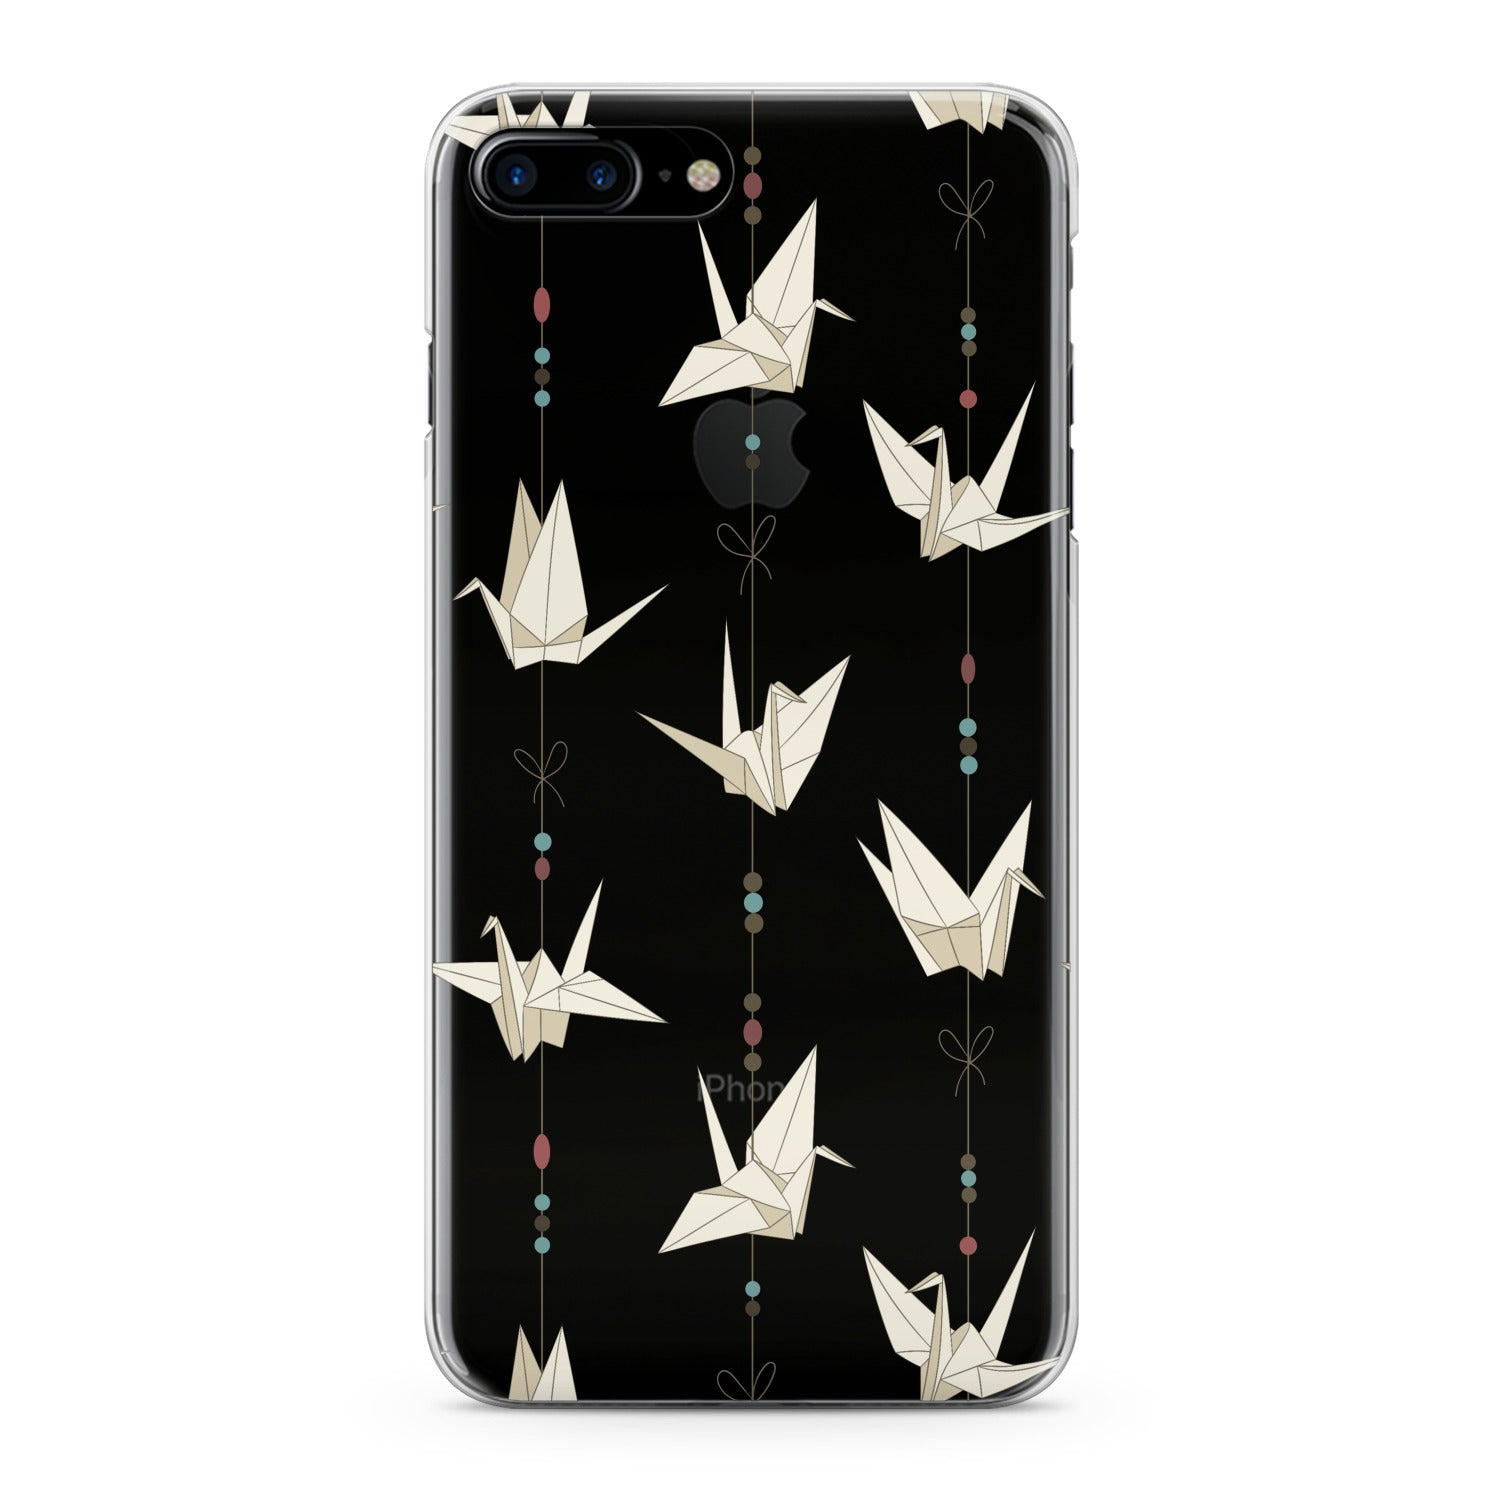 Lex Altern Birdie Origami Phone Case for your iPhone & Android phone.